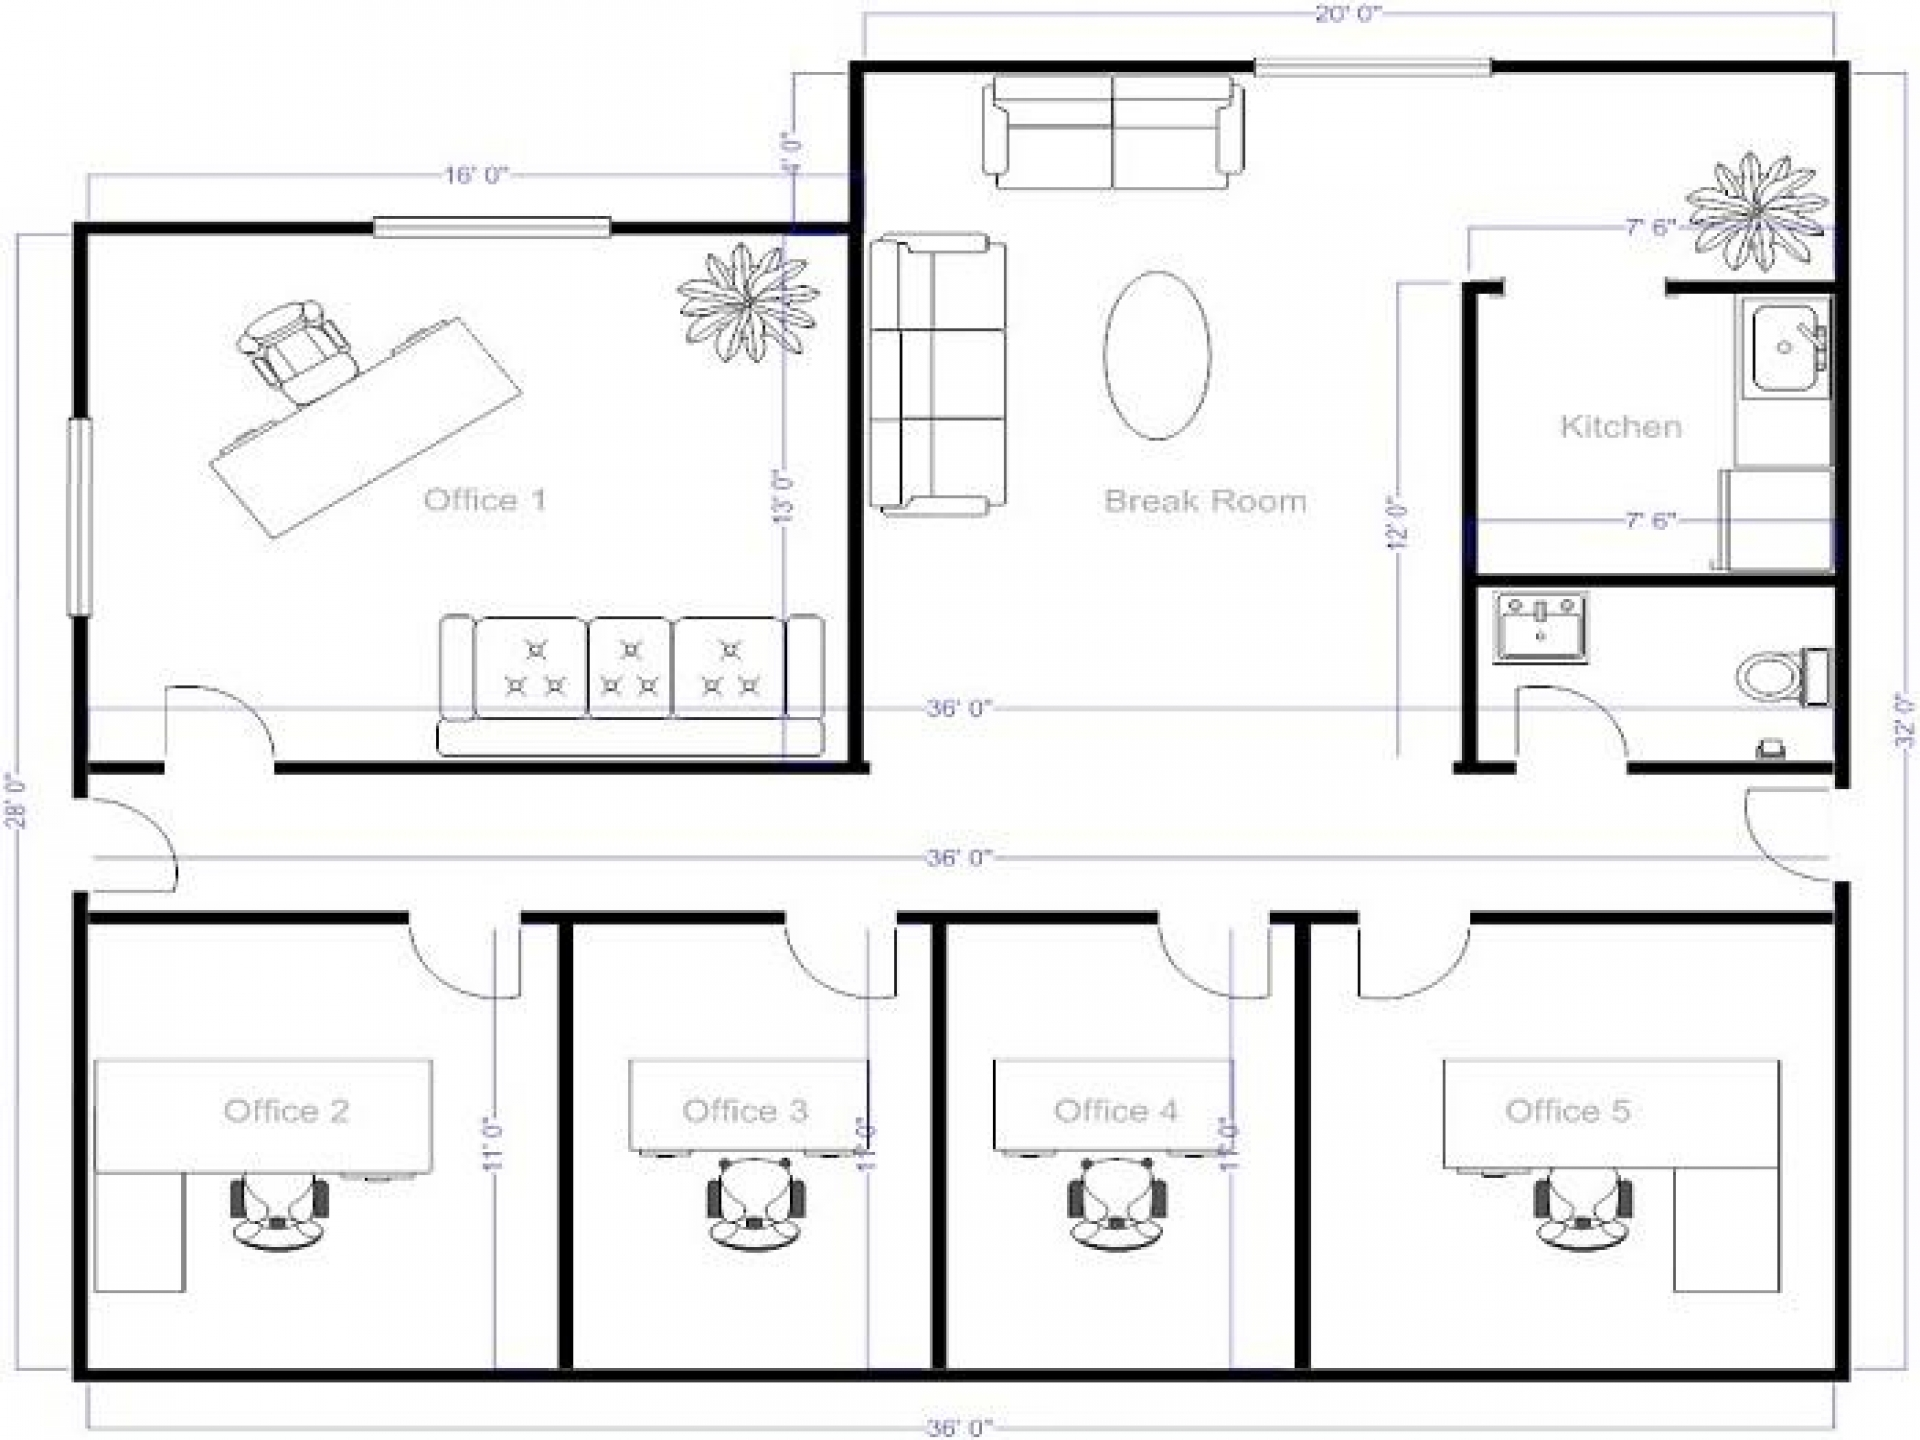 Drawn office office layout  Floor Plan Httpss Cache